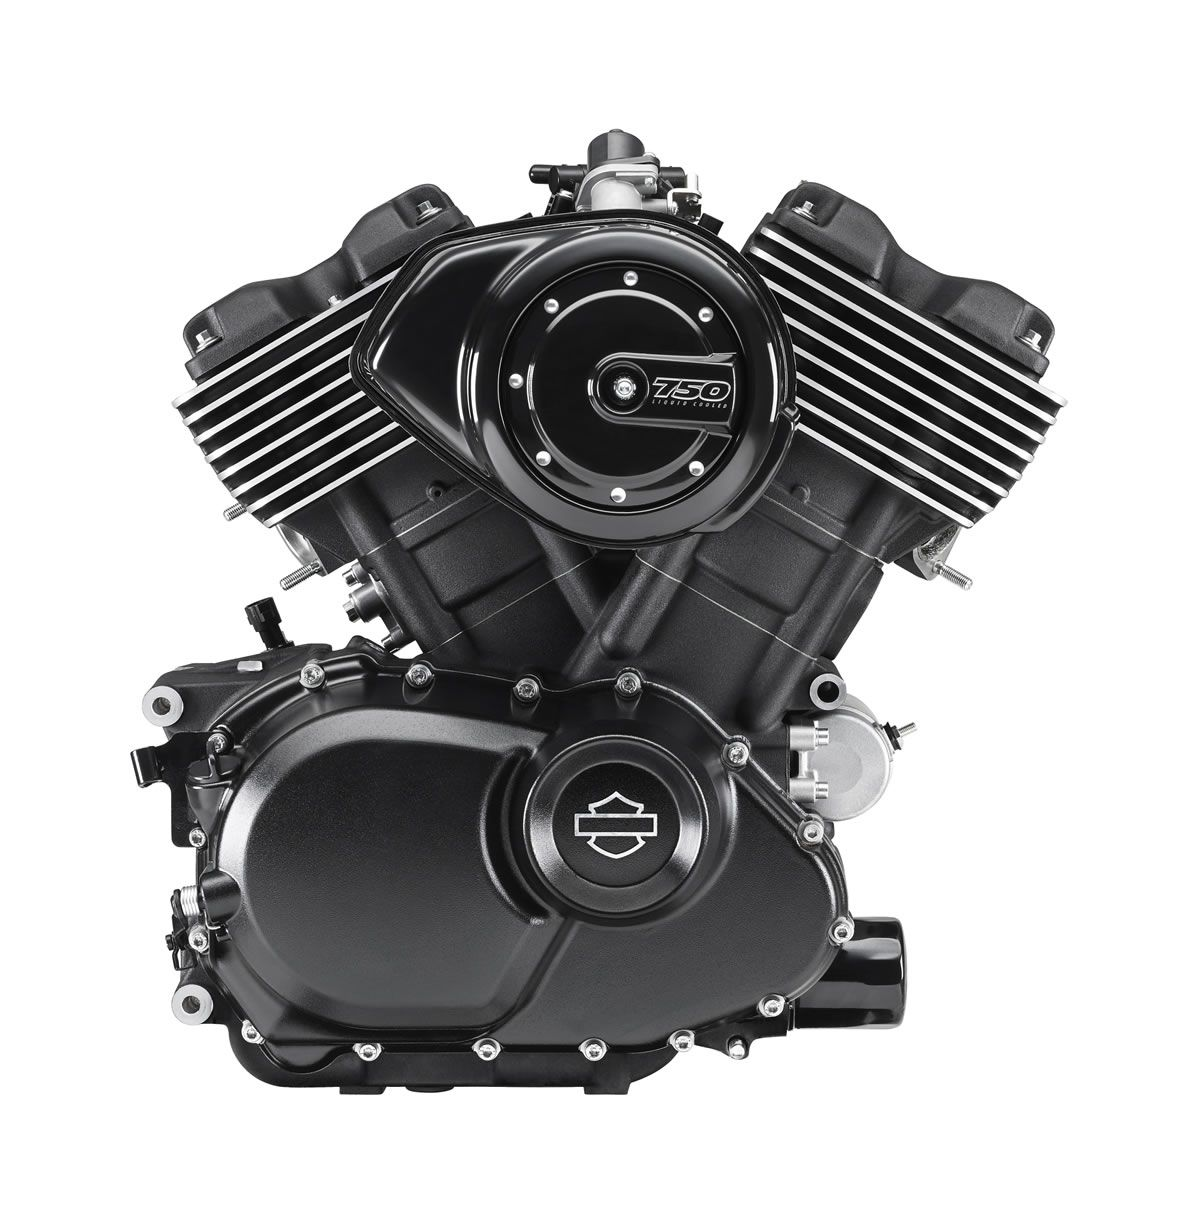 could this street 750 liquid cooled engine make it on the dirt